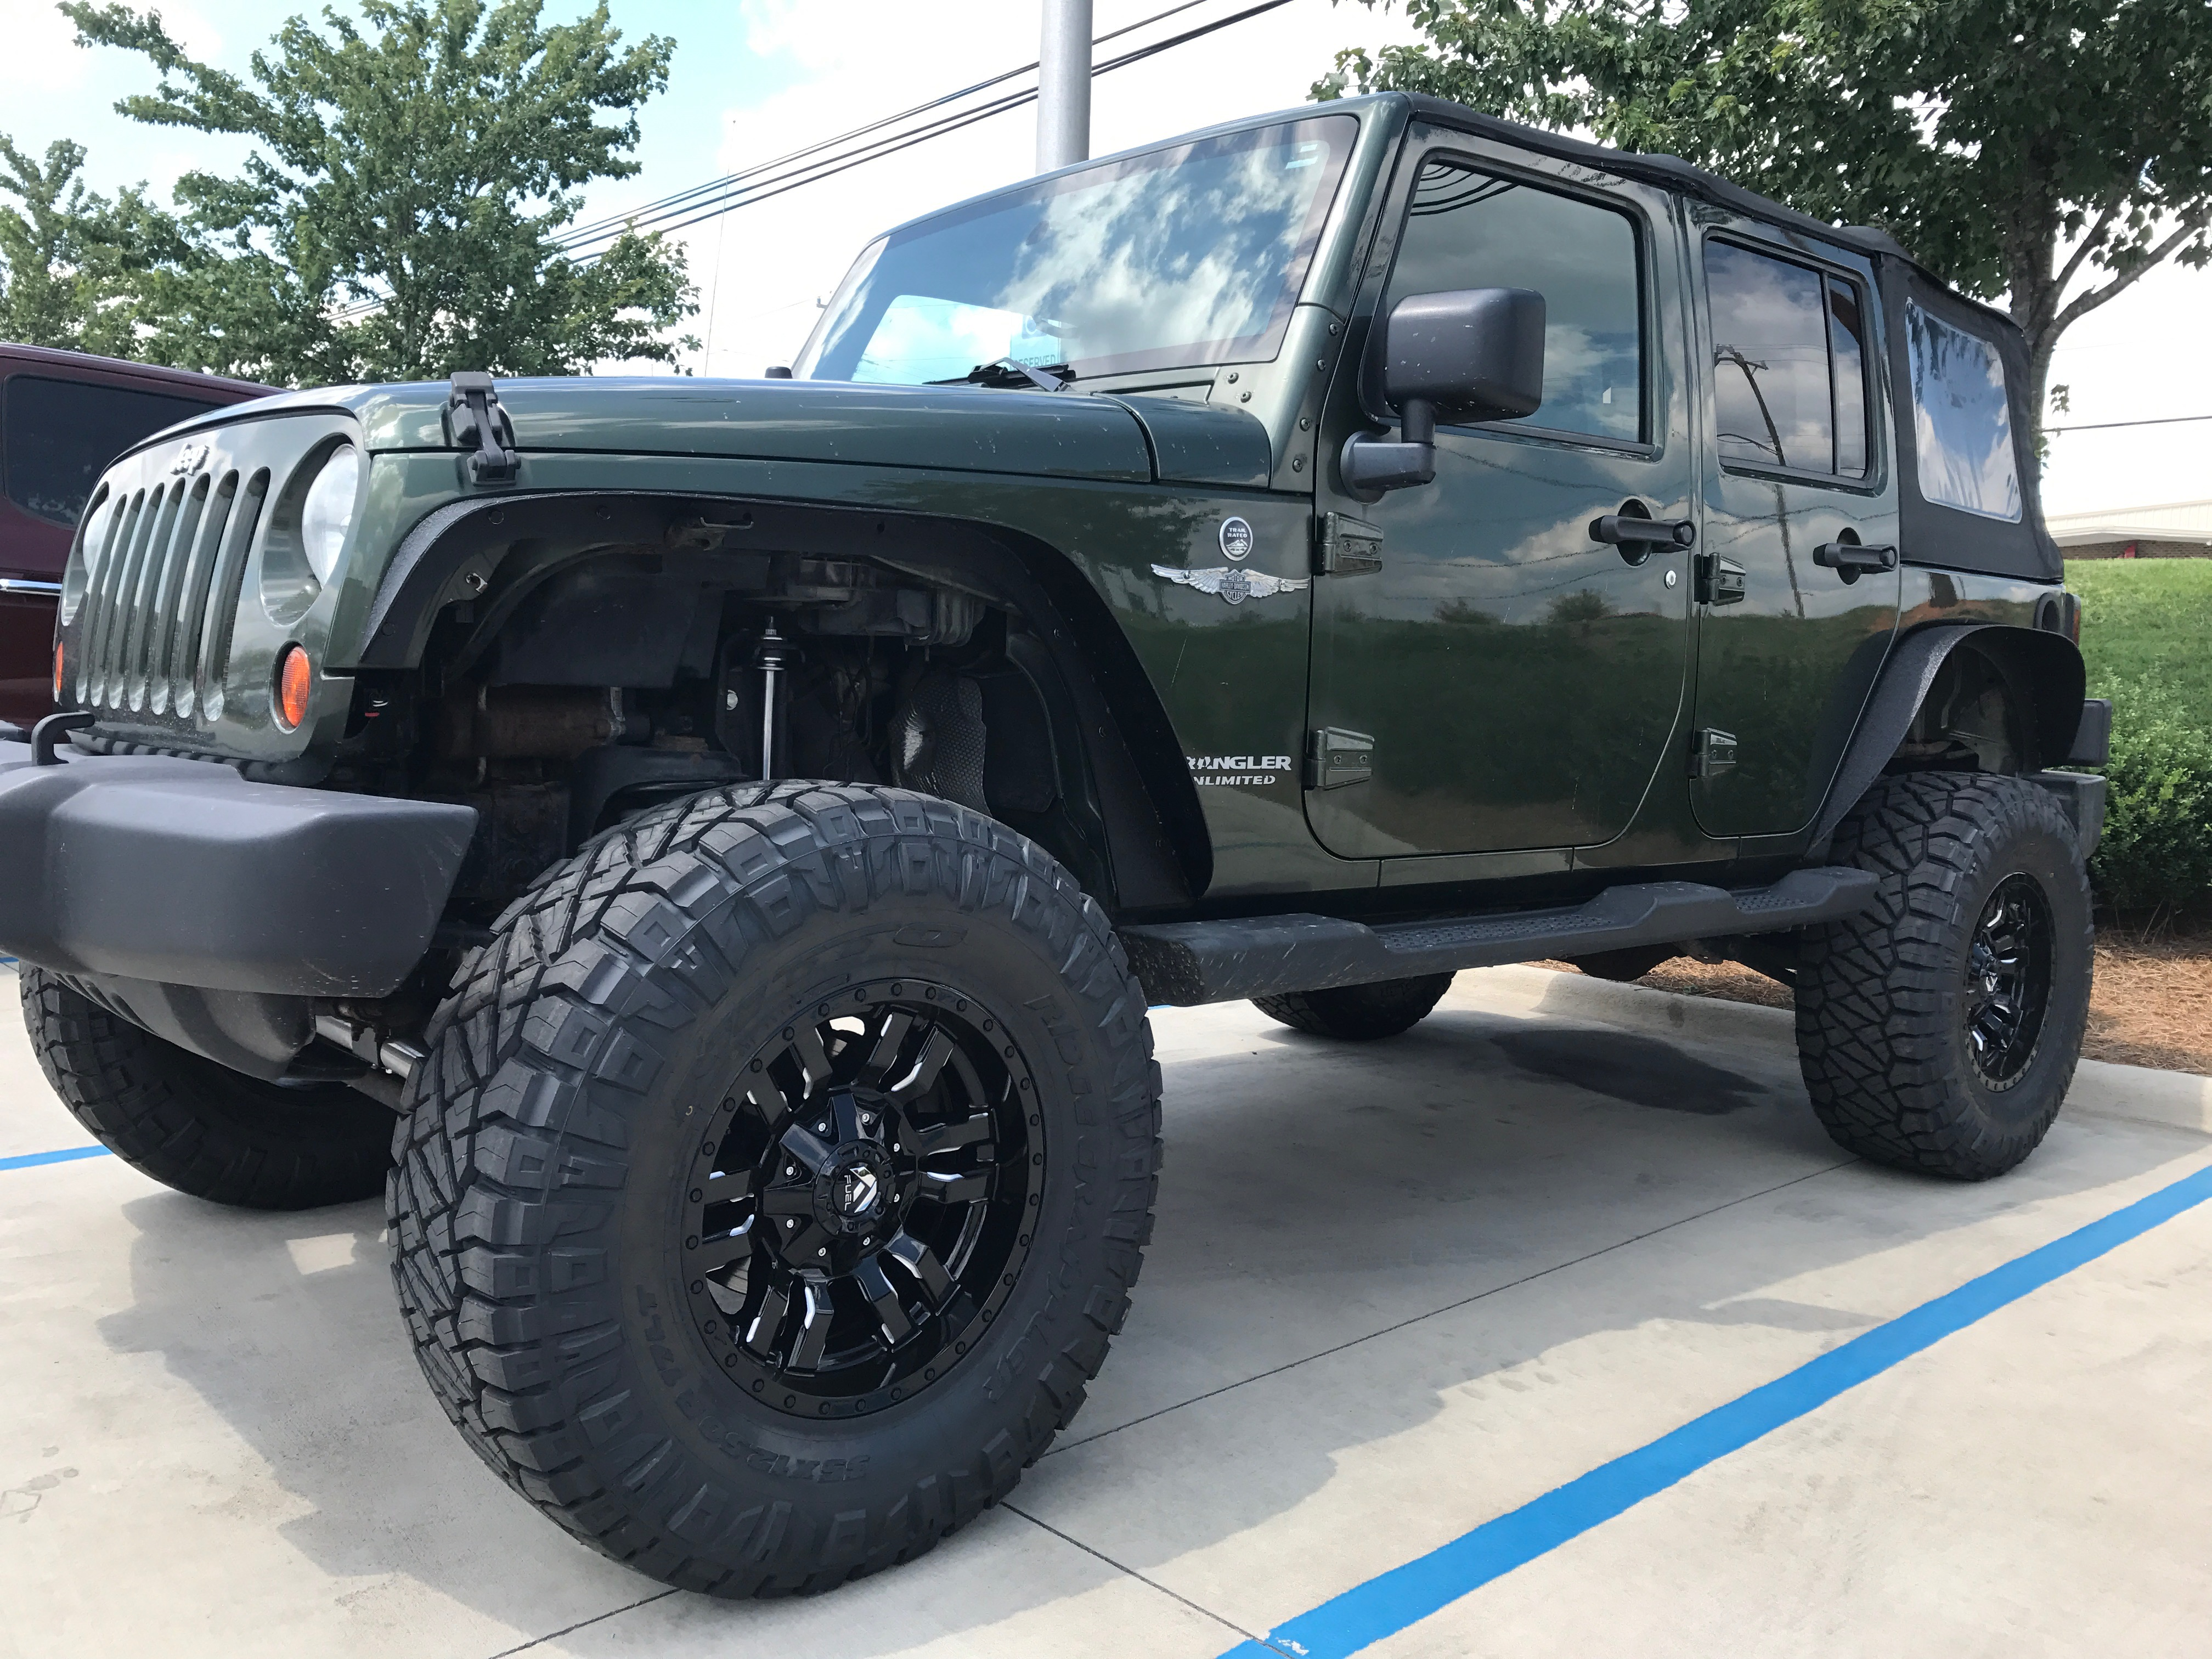 Route 66 Lifted Jeep JK Green